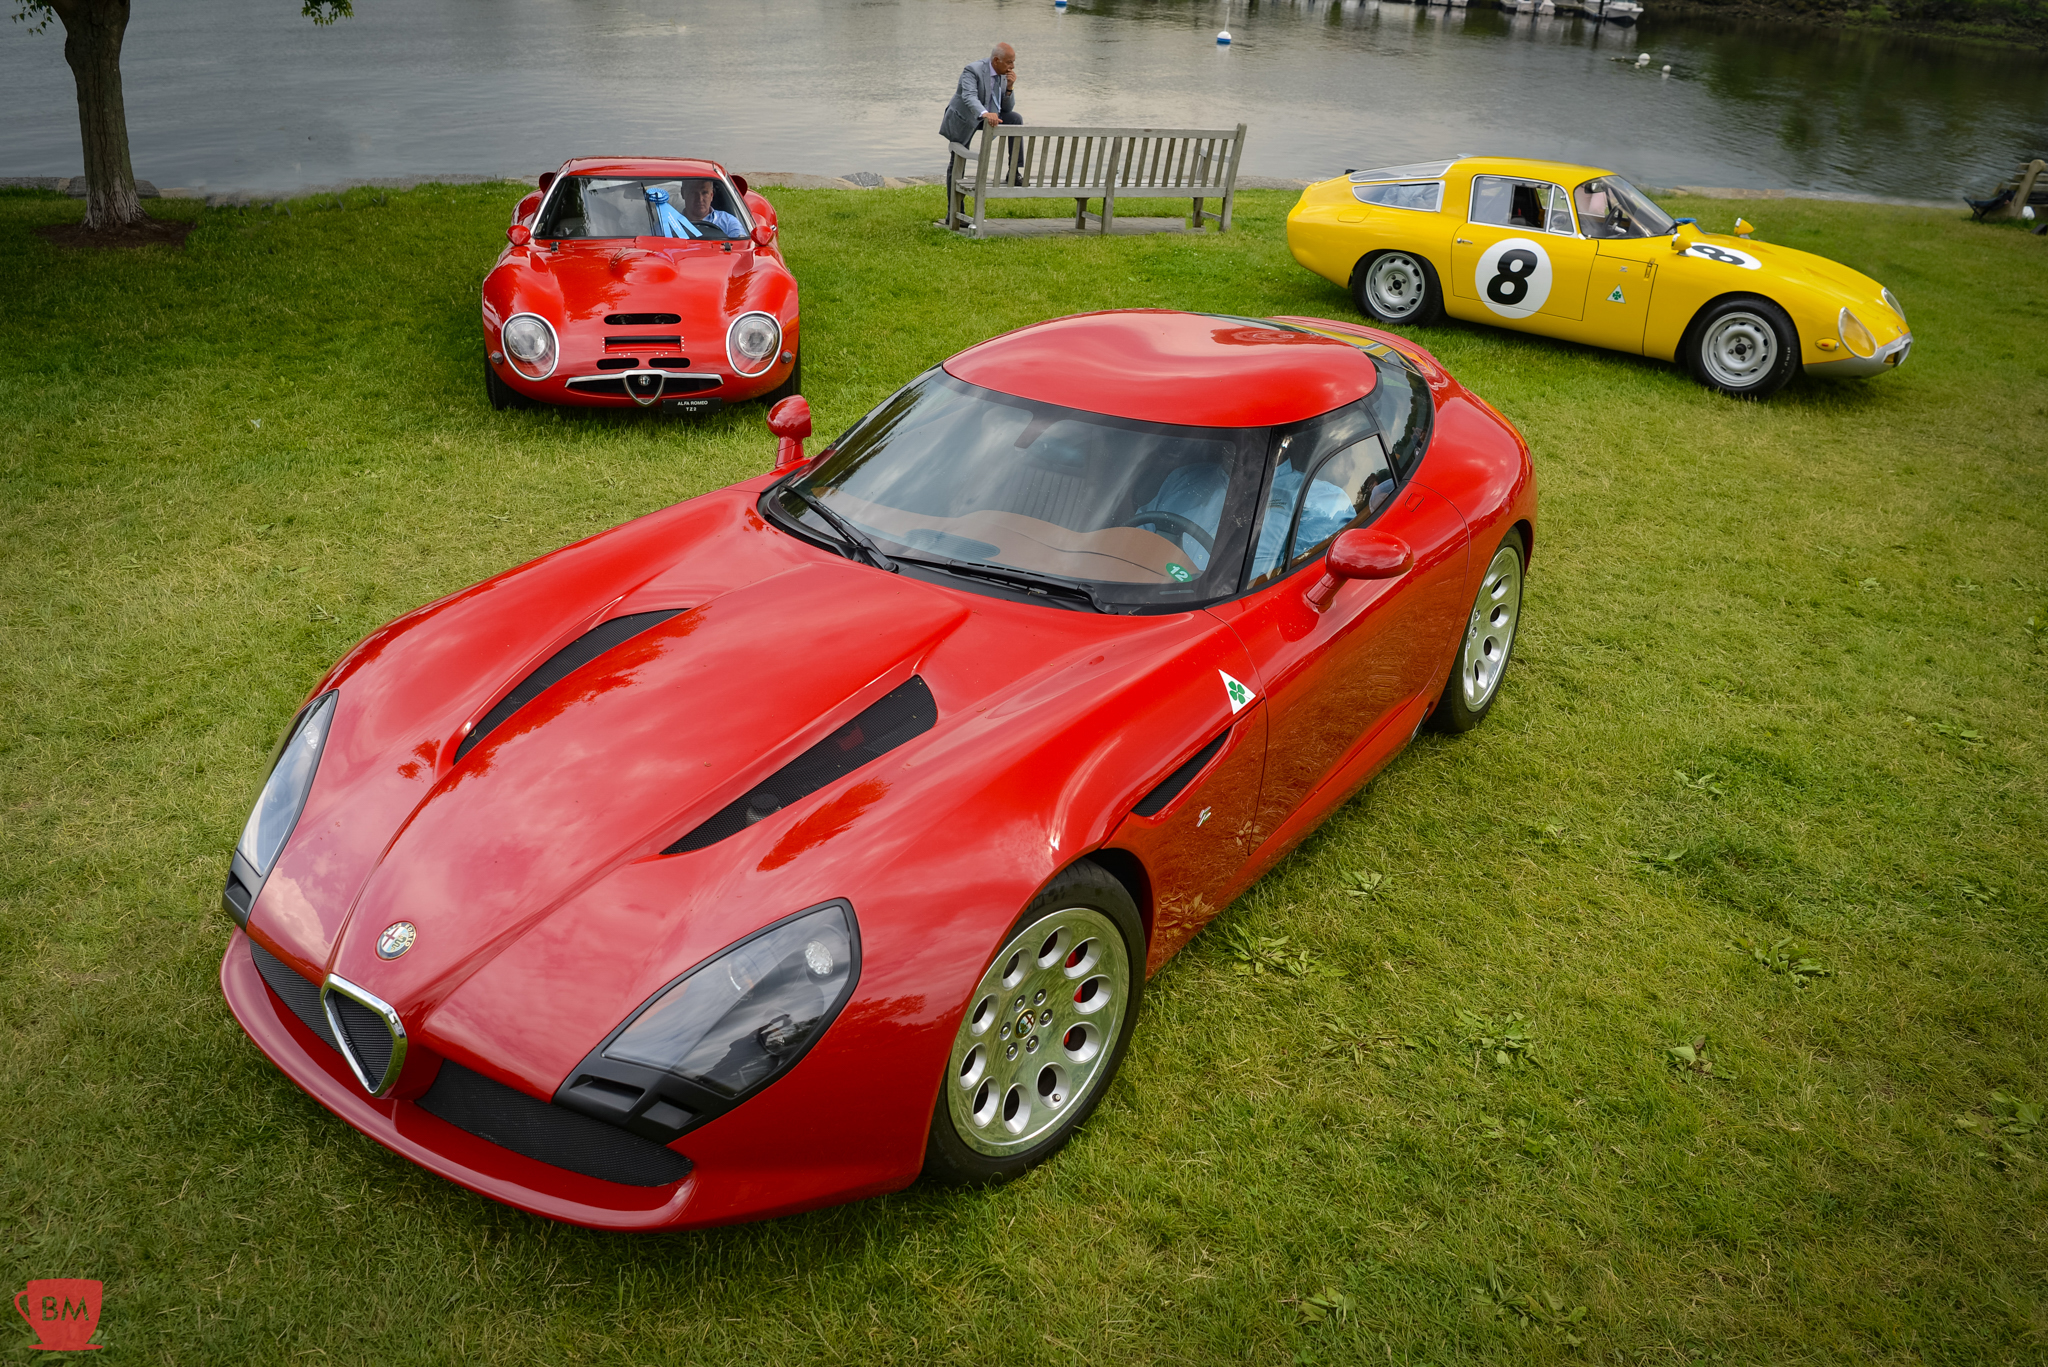 All three TZs…the one image from the Greenwich Concours that really made my weekend complete.